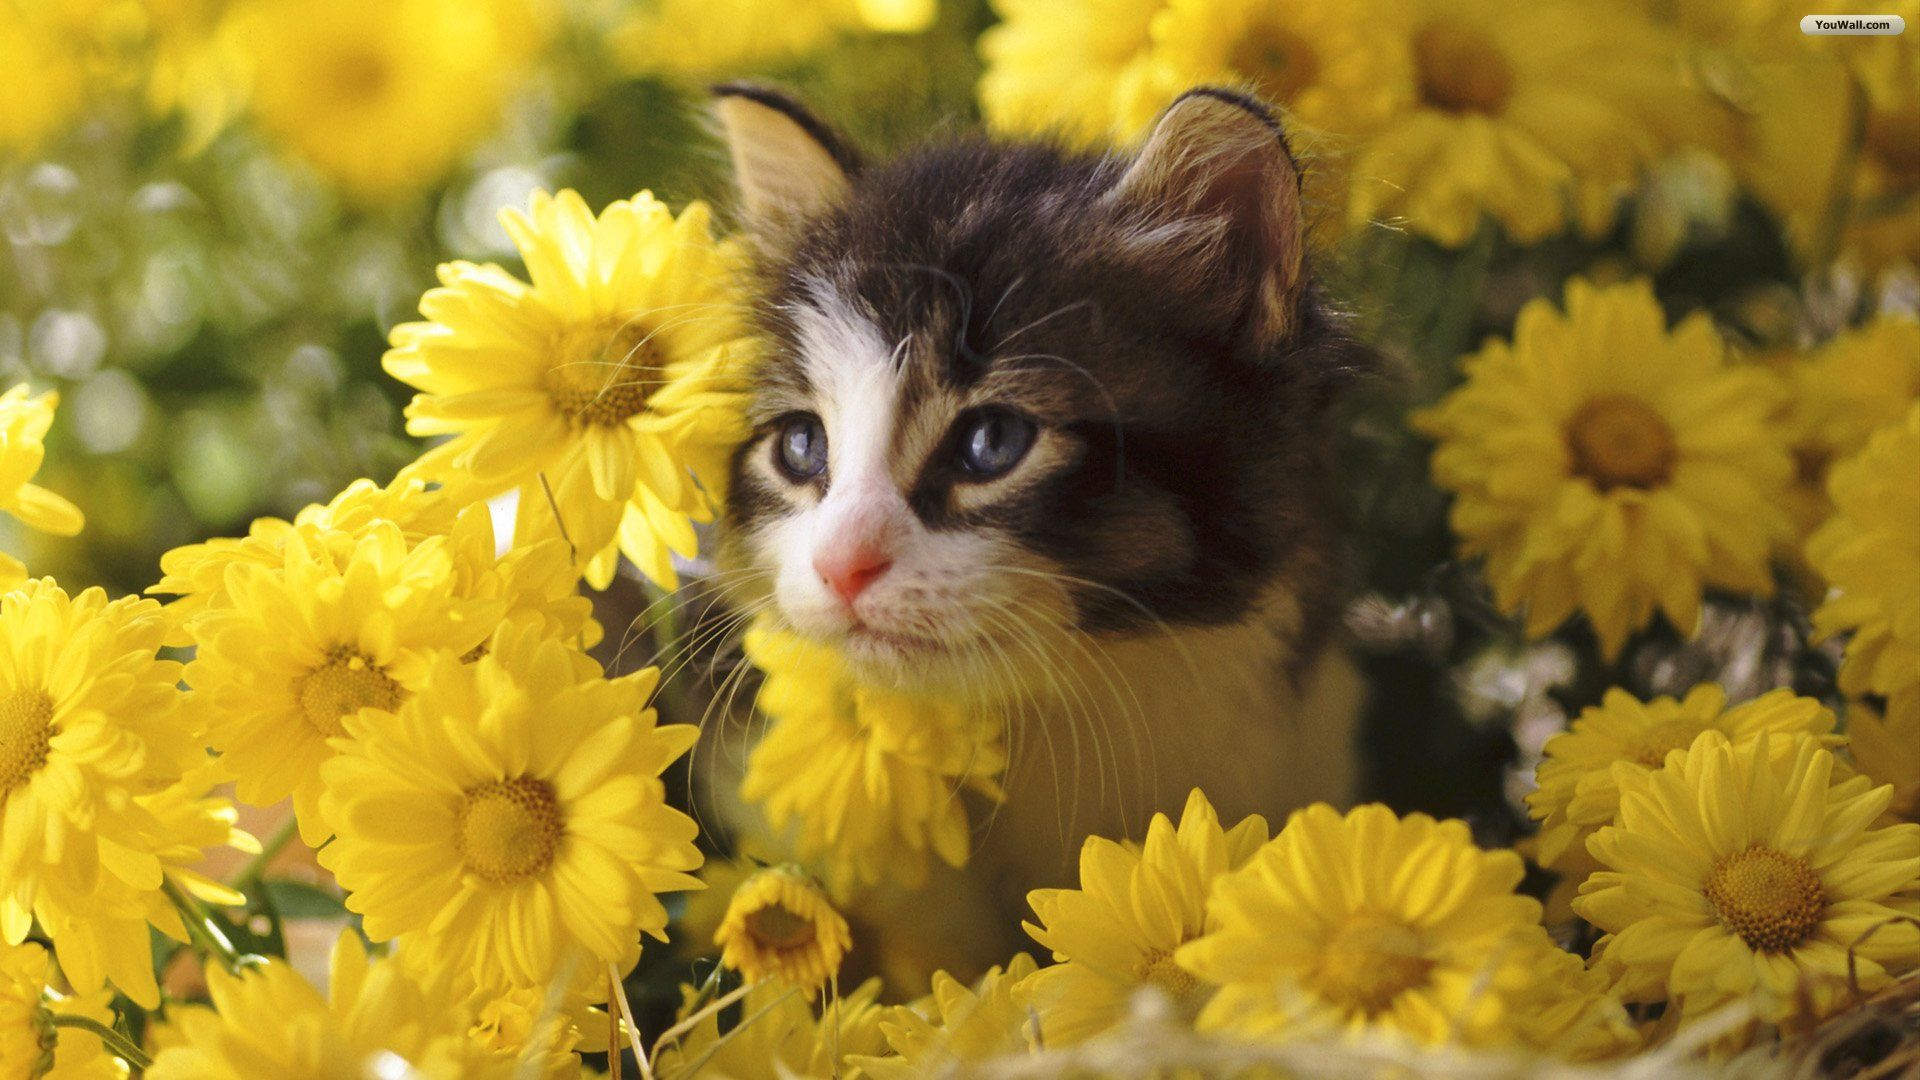 cats in flowers Cats wallpapers,Cats,Flowers